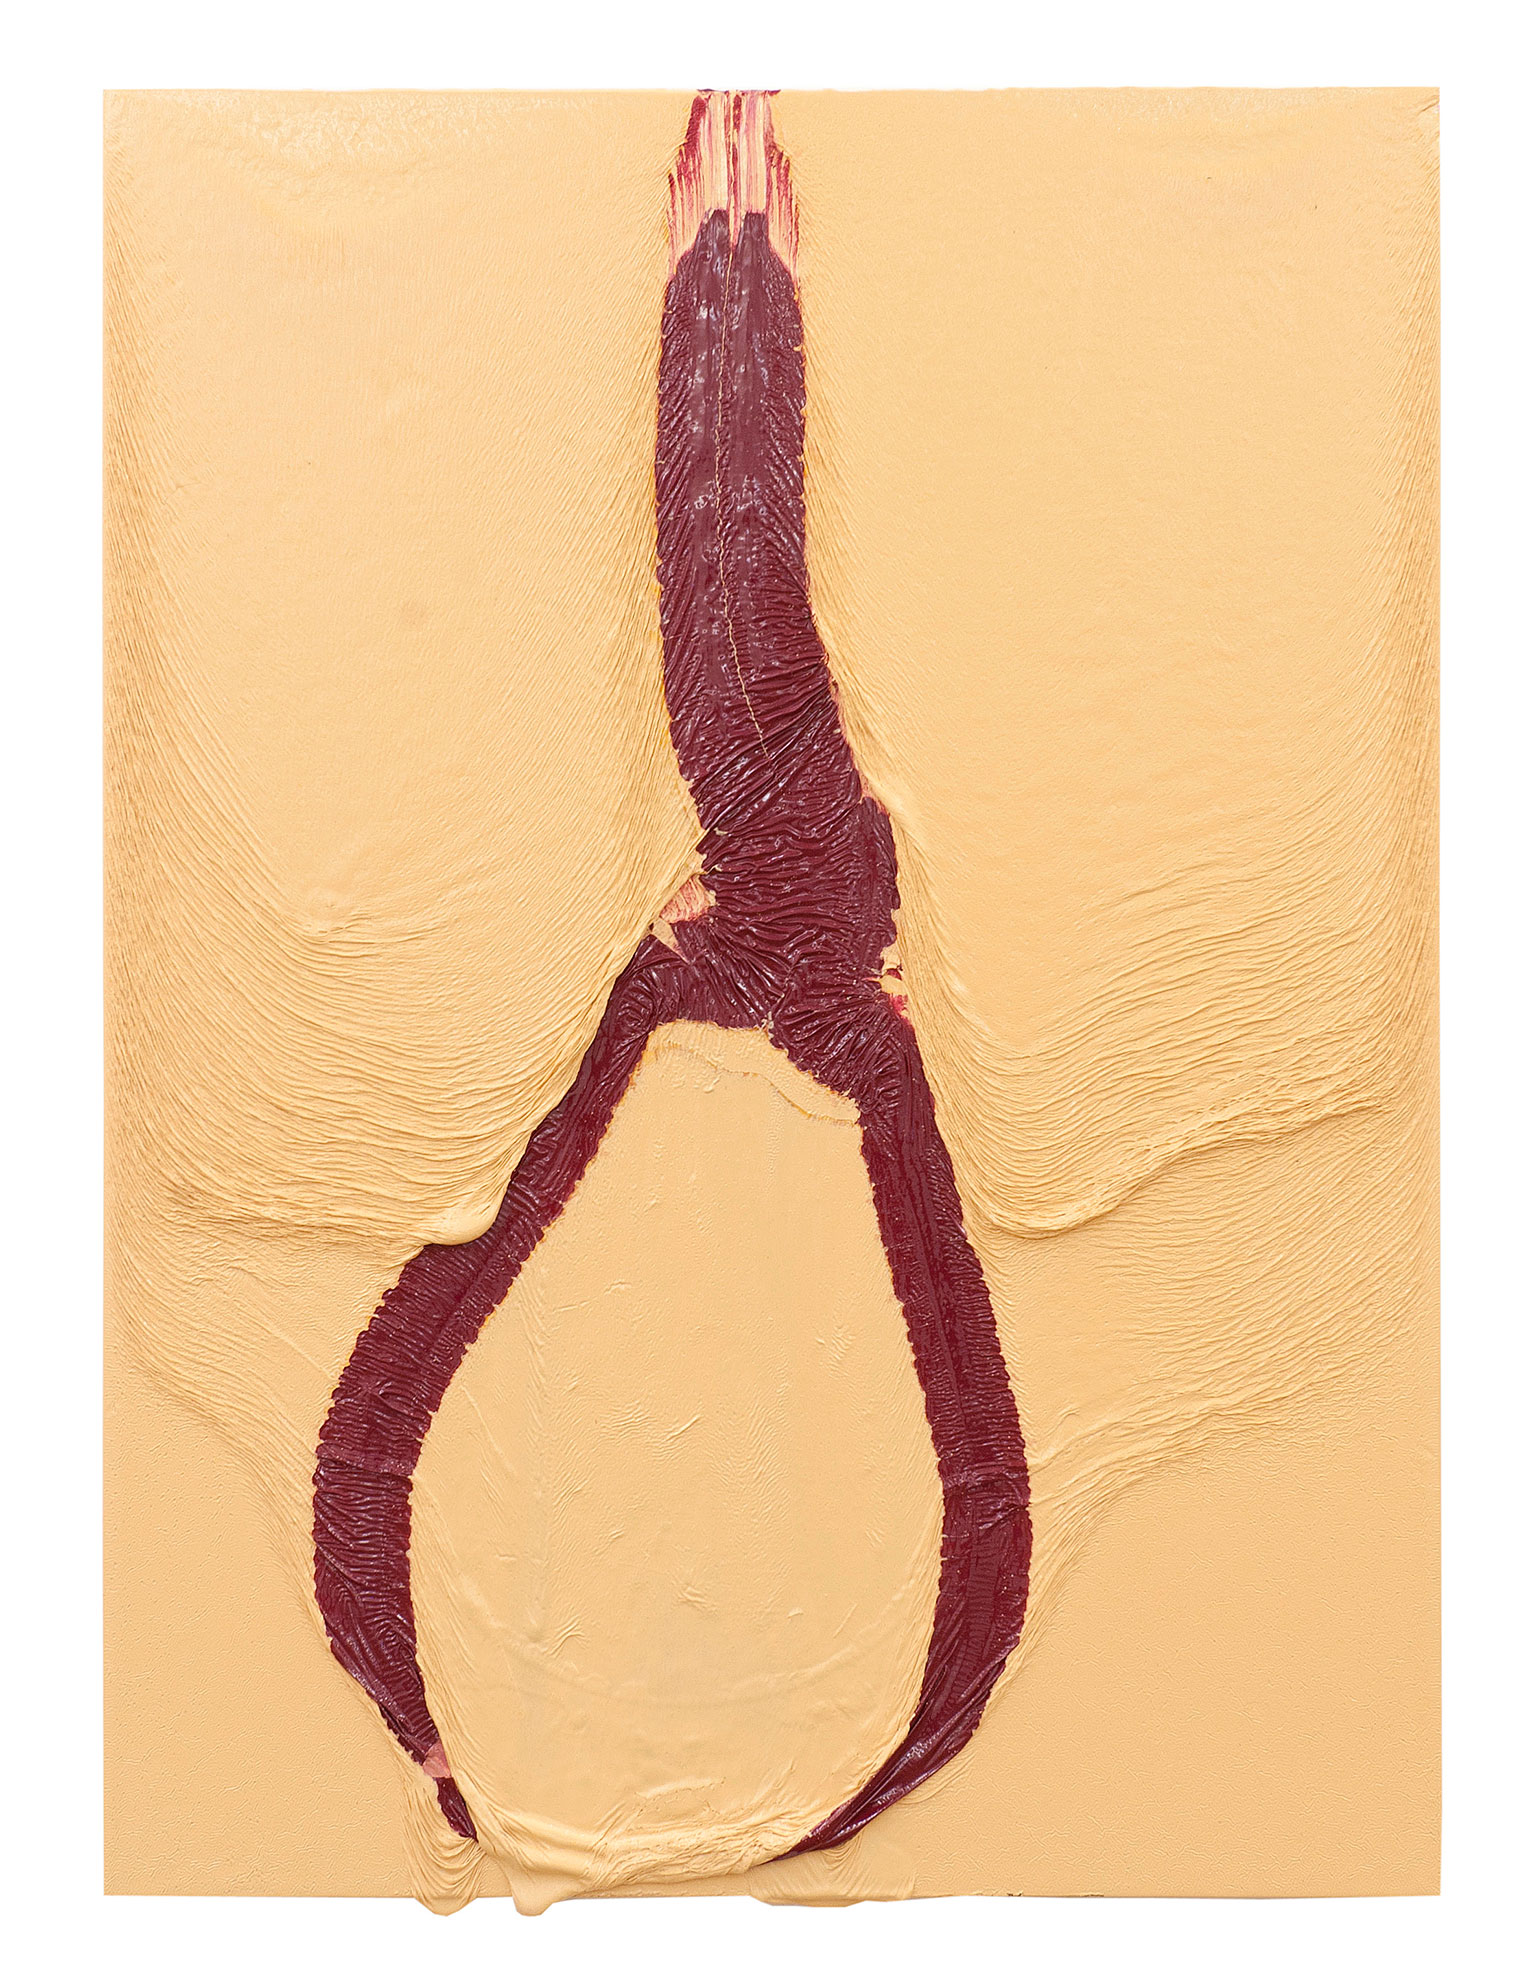 <b>Title:&nbsp;</b>Noose<br /><b>Year:&nbsp;</b>2011<br /><b>Medium:&nbsp;</b>Oil and gloss on MDF panel<br /><b>Size:&nbsp;</b>85 x 65 cm